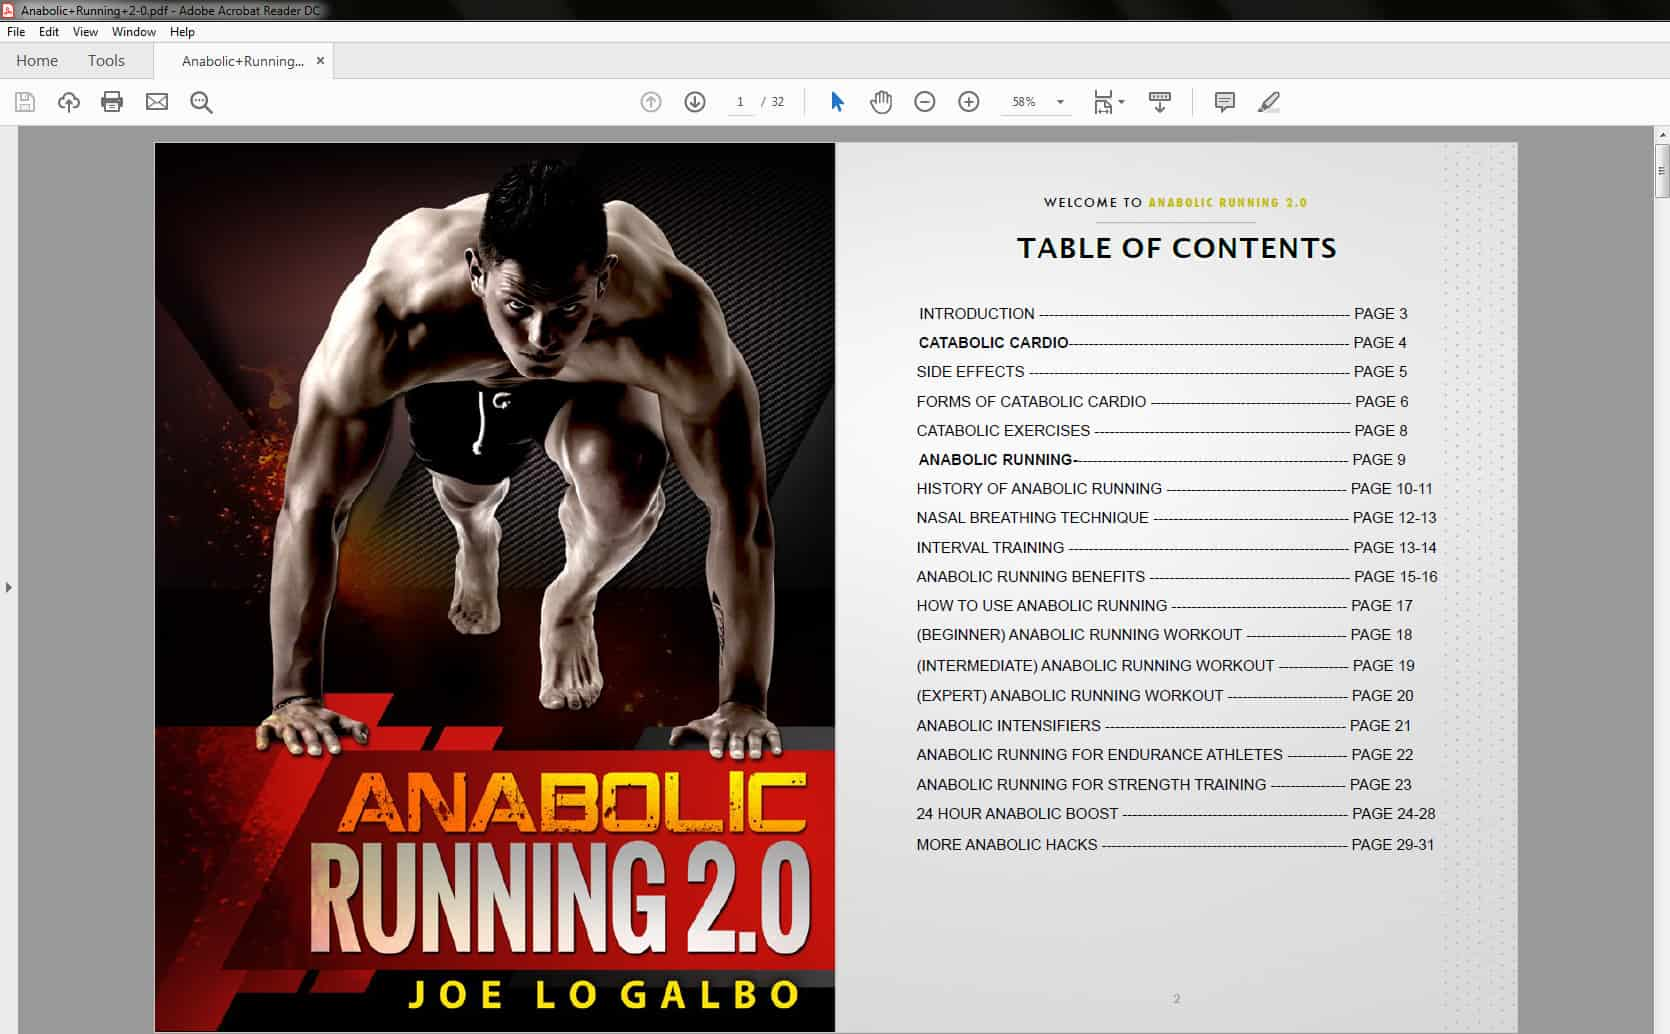 Anabolic Running 2 - Table of Contents